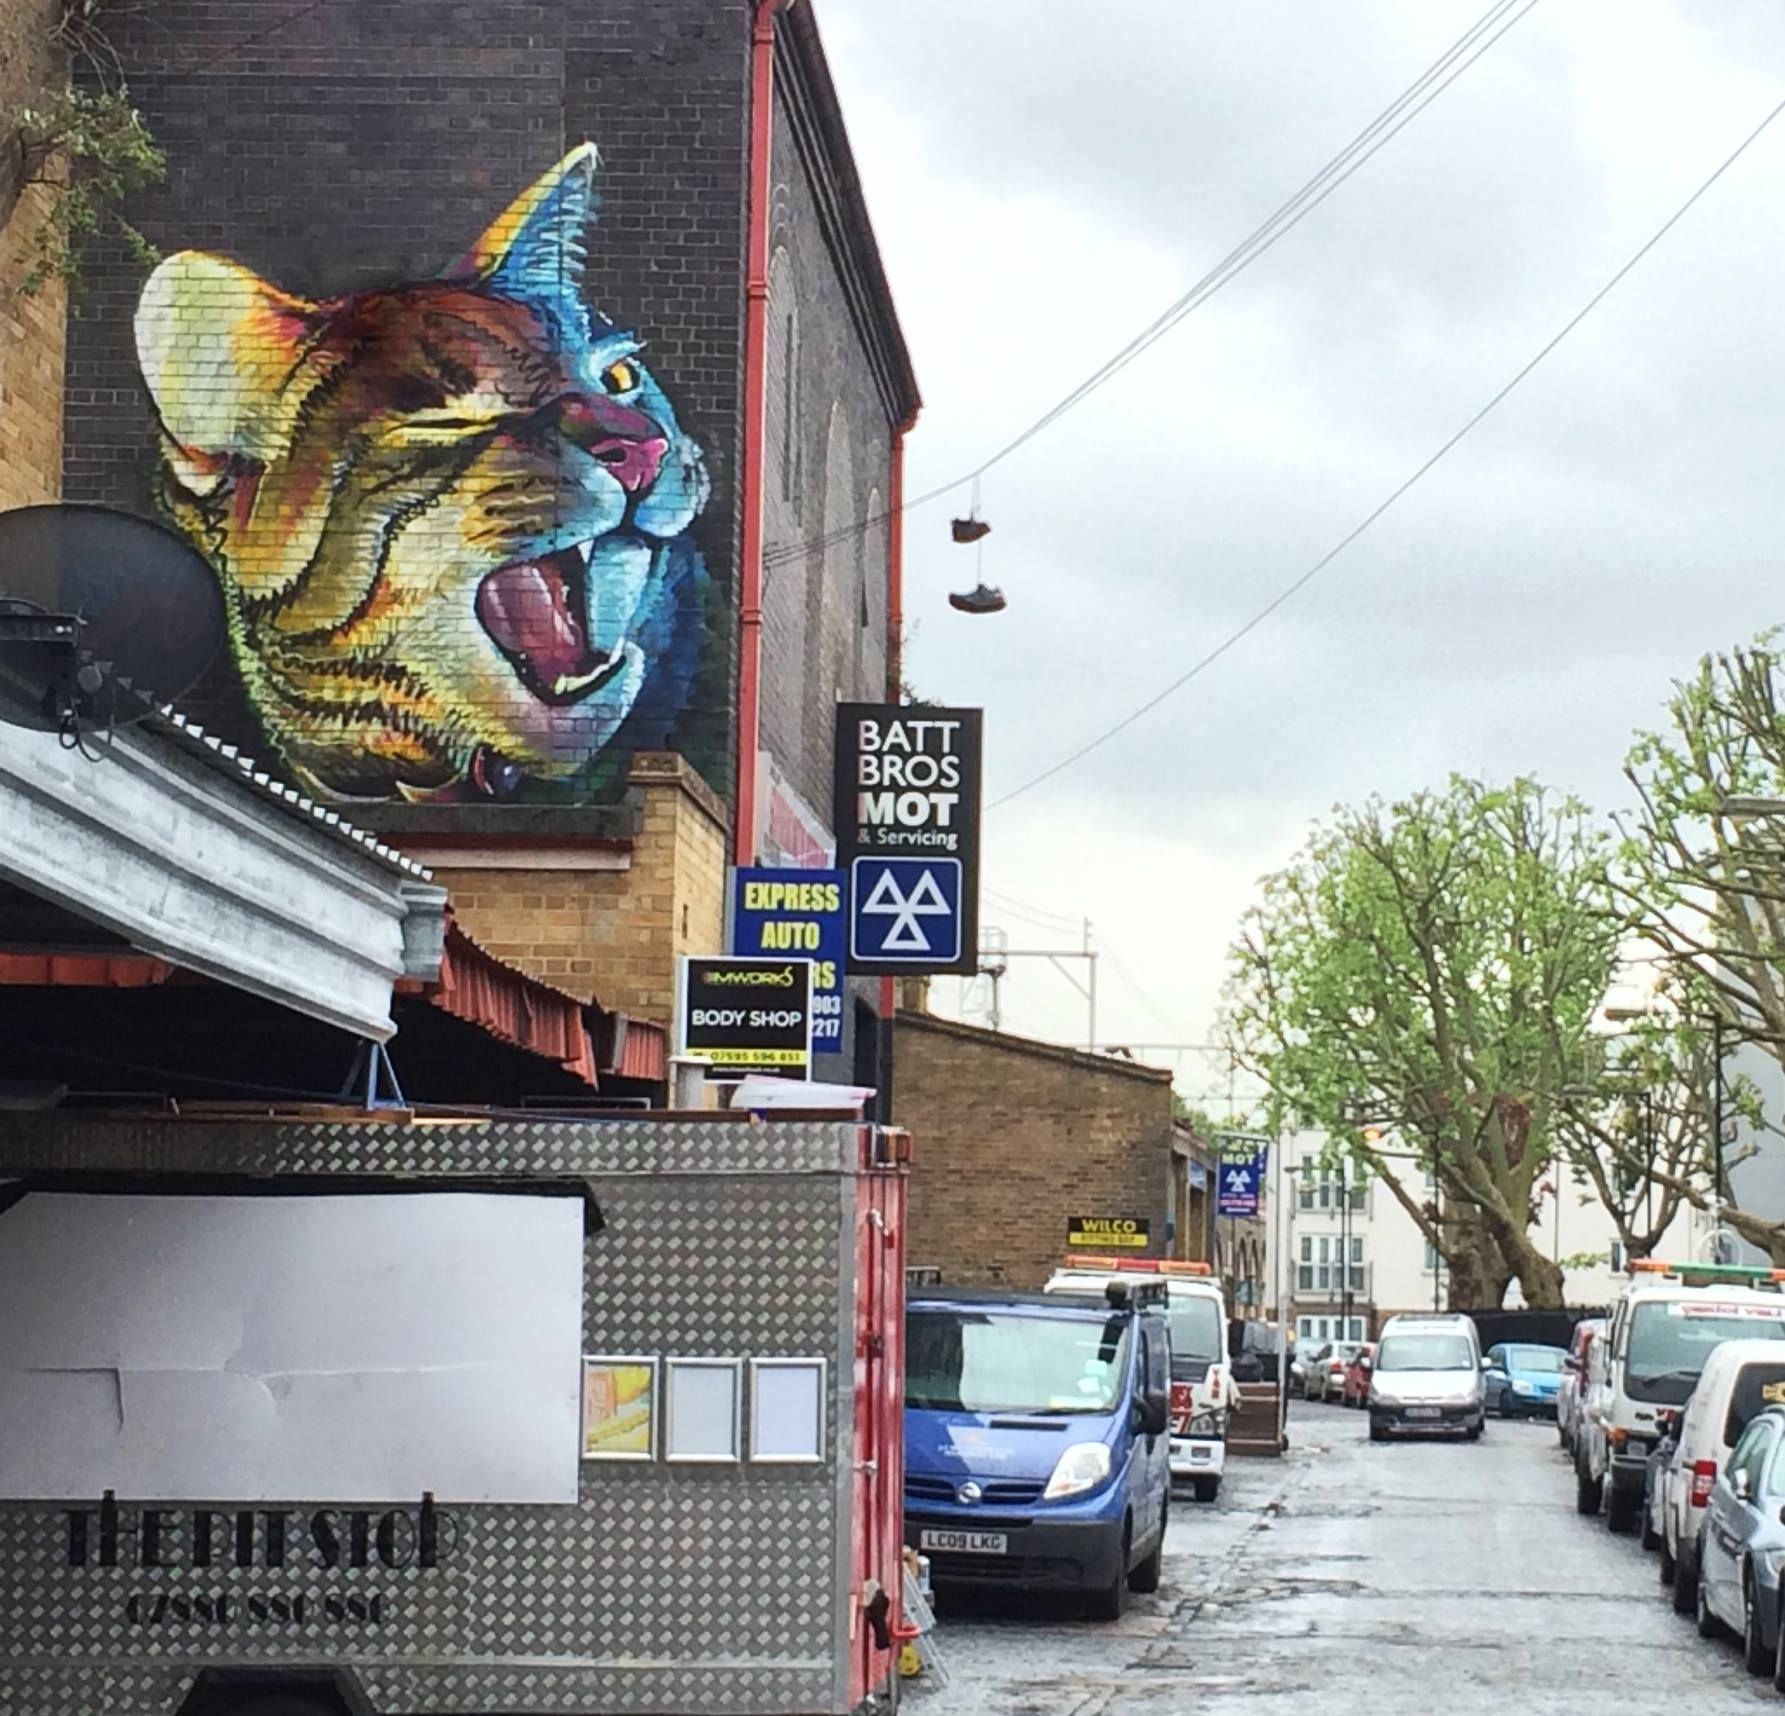 Irony in Bethnal Green, London